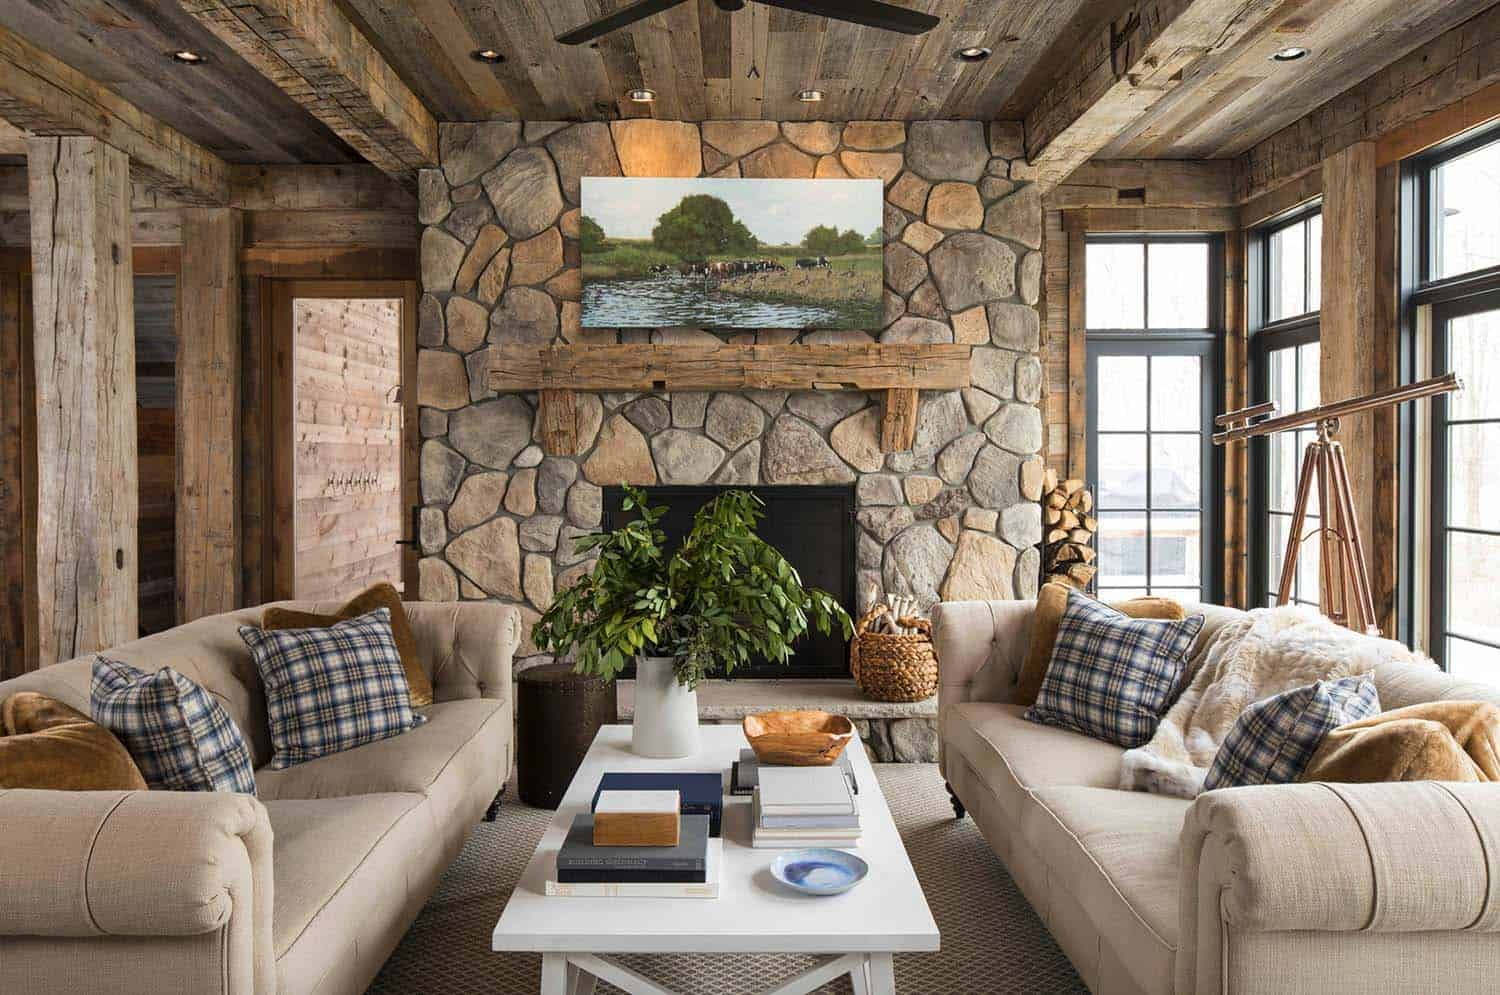 Rustic Lake House-Martha OHara Interiors-10-1 Kindesign